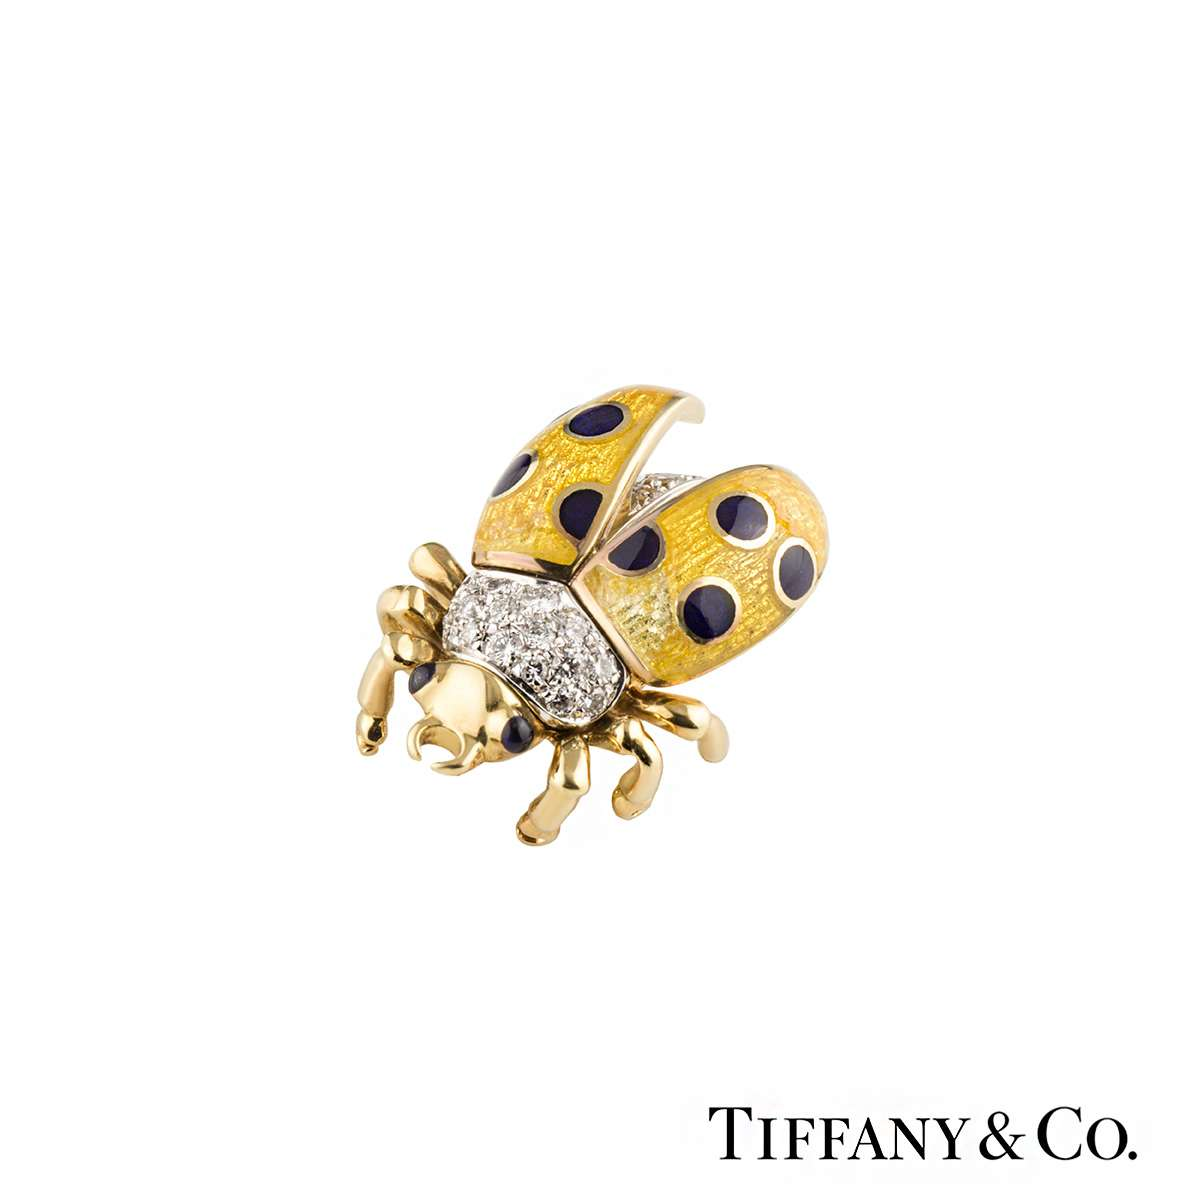 Tiffany & Co. Ladybird Diamond Brooch